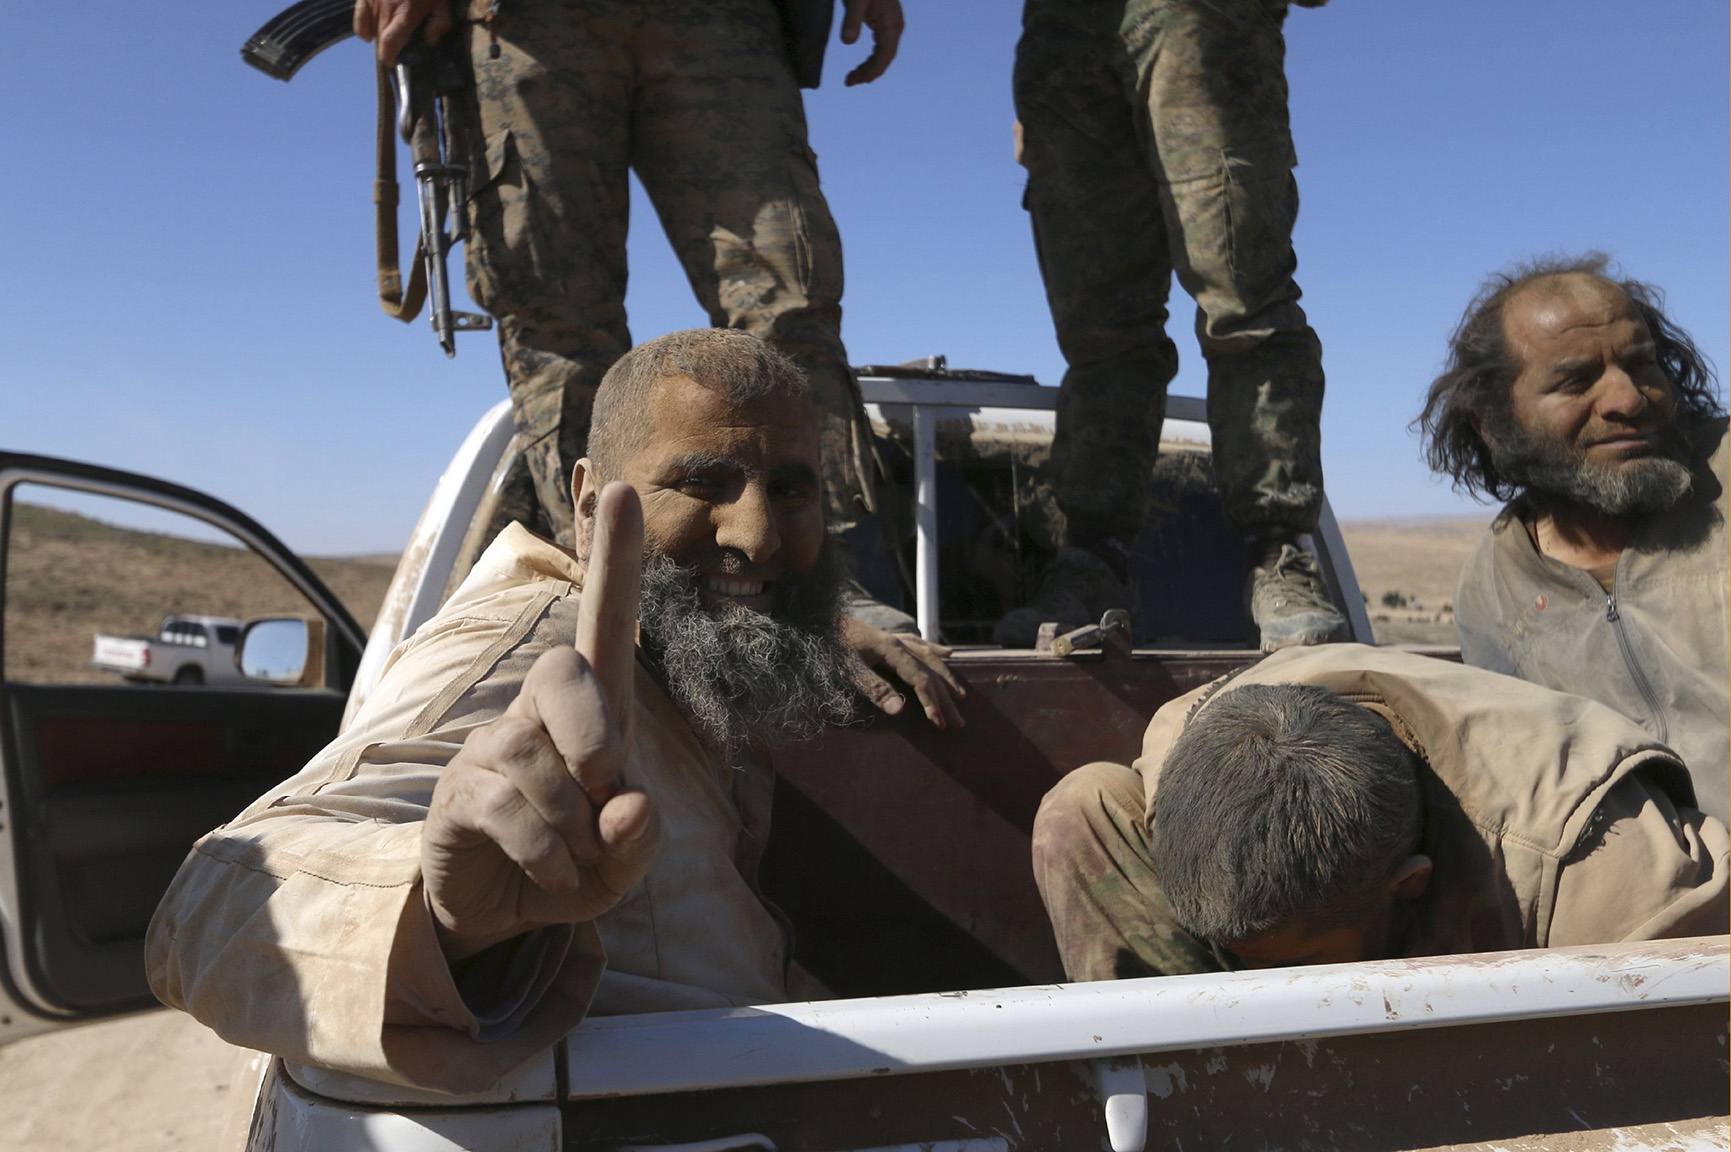 An Islamic State fighter gestures while being held as prisoner with fellow fighters under Democratic Forces of Syria fighters as they ride a pick-up truck near al-Shadadi town, Hasaka countryside